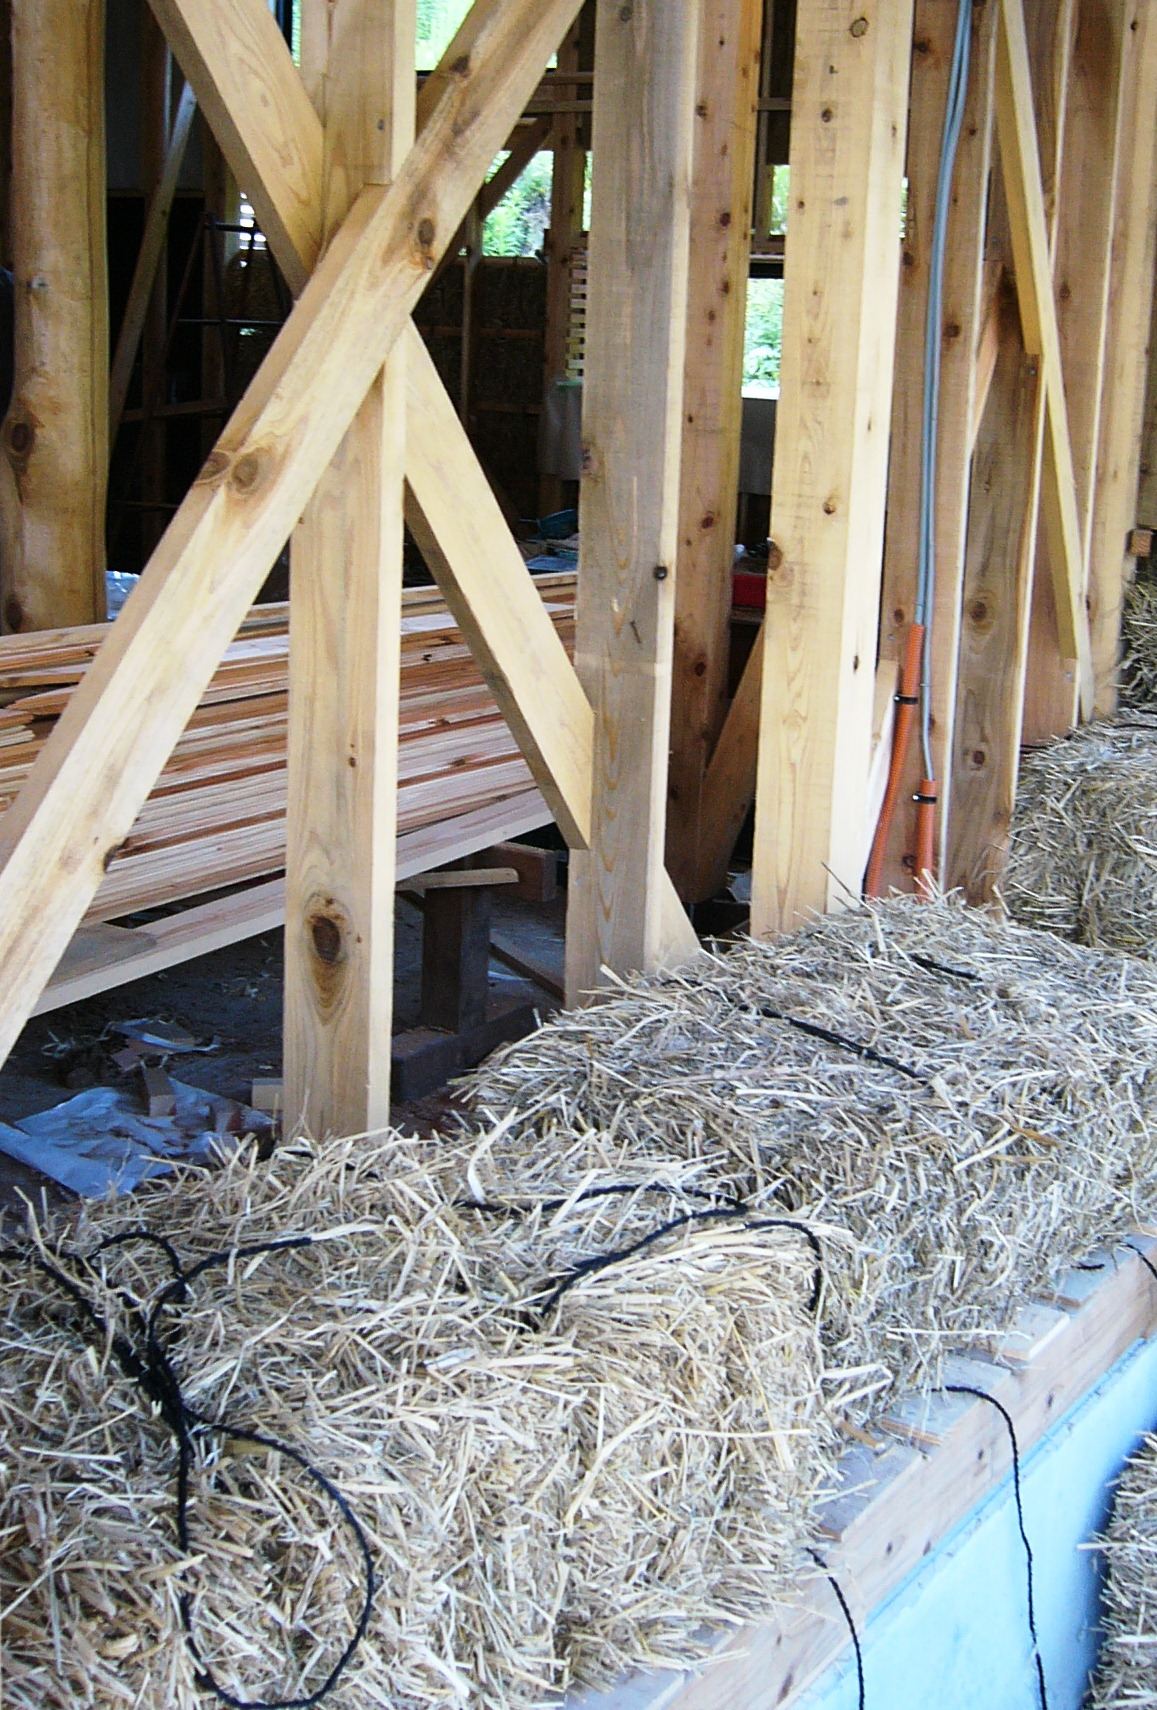 Straw bale building in japan page 2 of 8 the last for Timber frame straw bale house plans